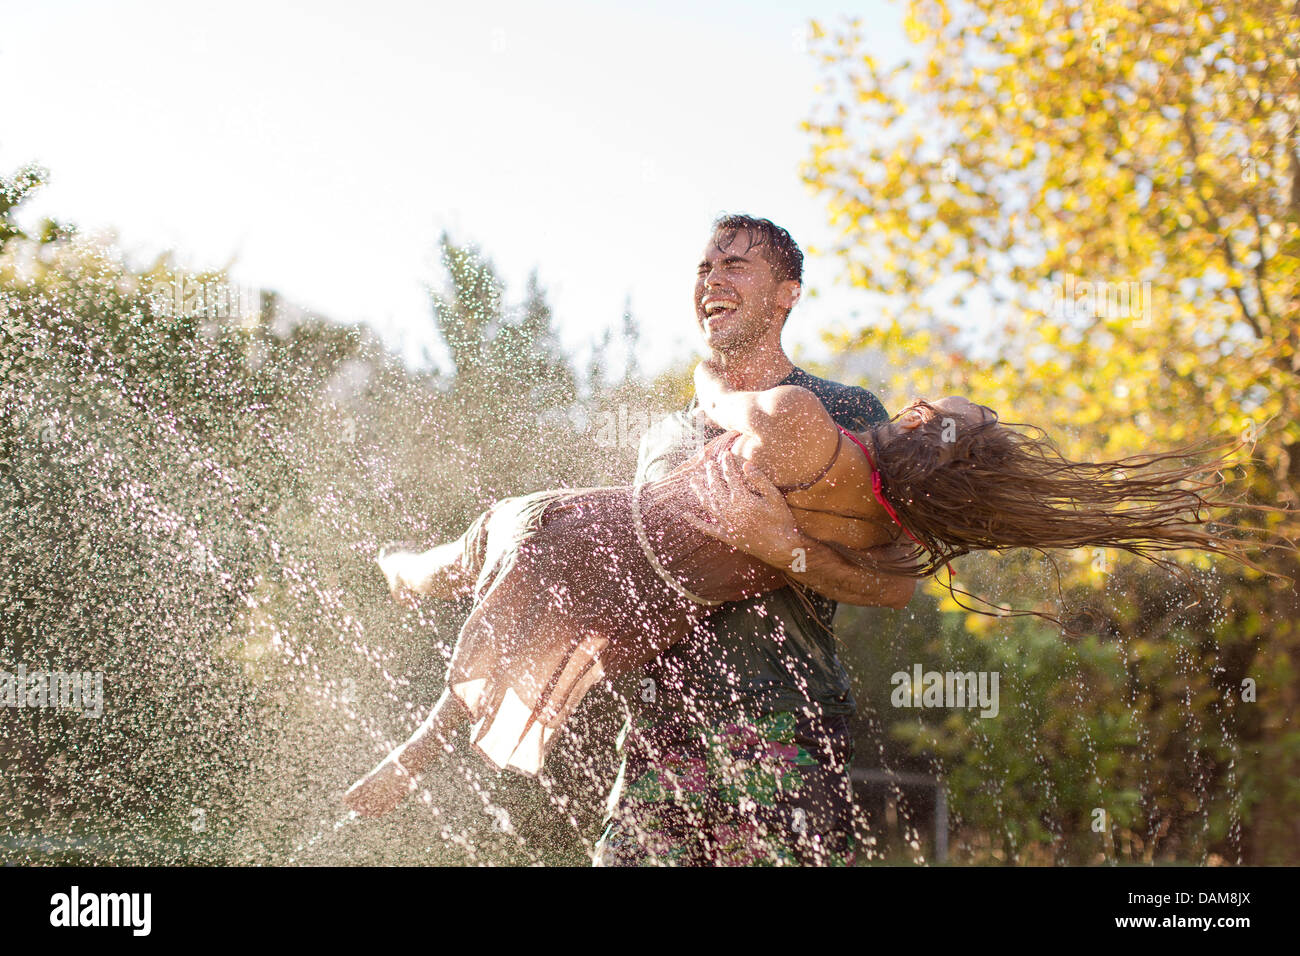 Couple playing in backyard sprinkleur Photo Stock